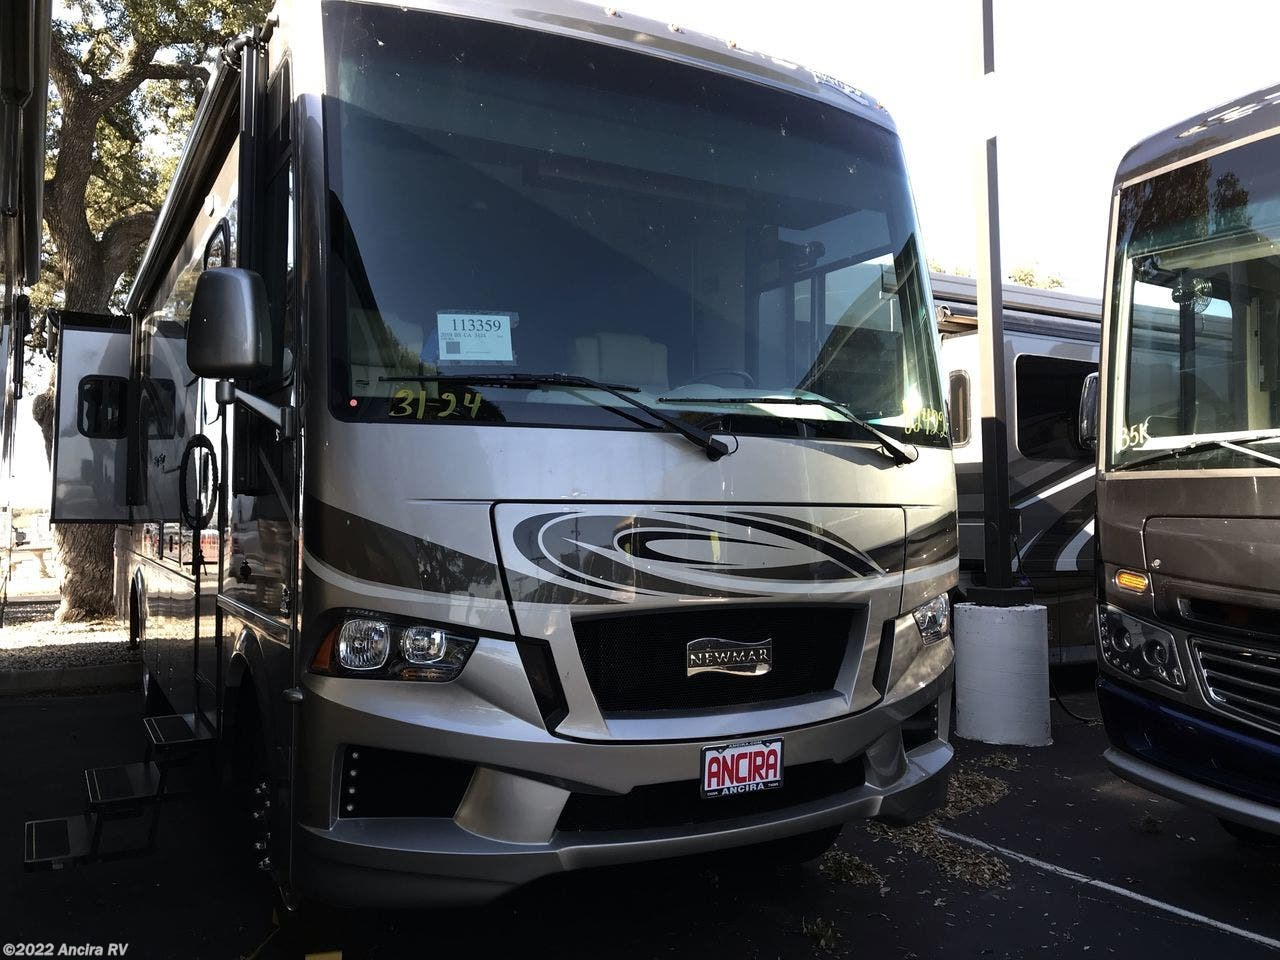 BY424 - 2019 Newmar Bay Star 3226 Class A for sale in Boerne TX